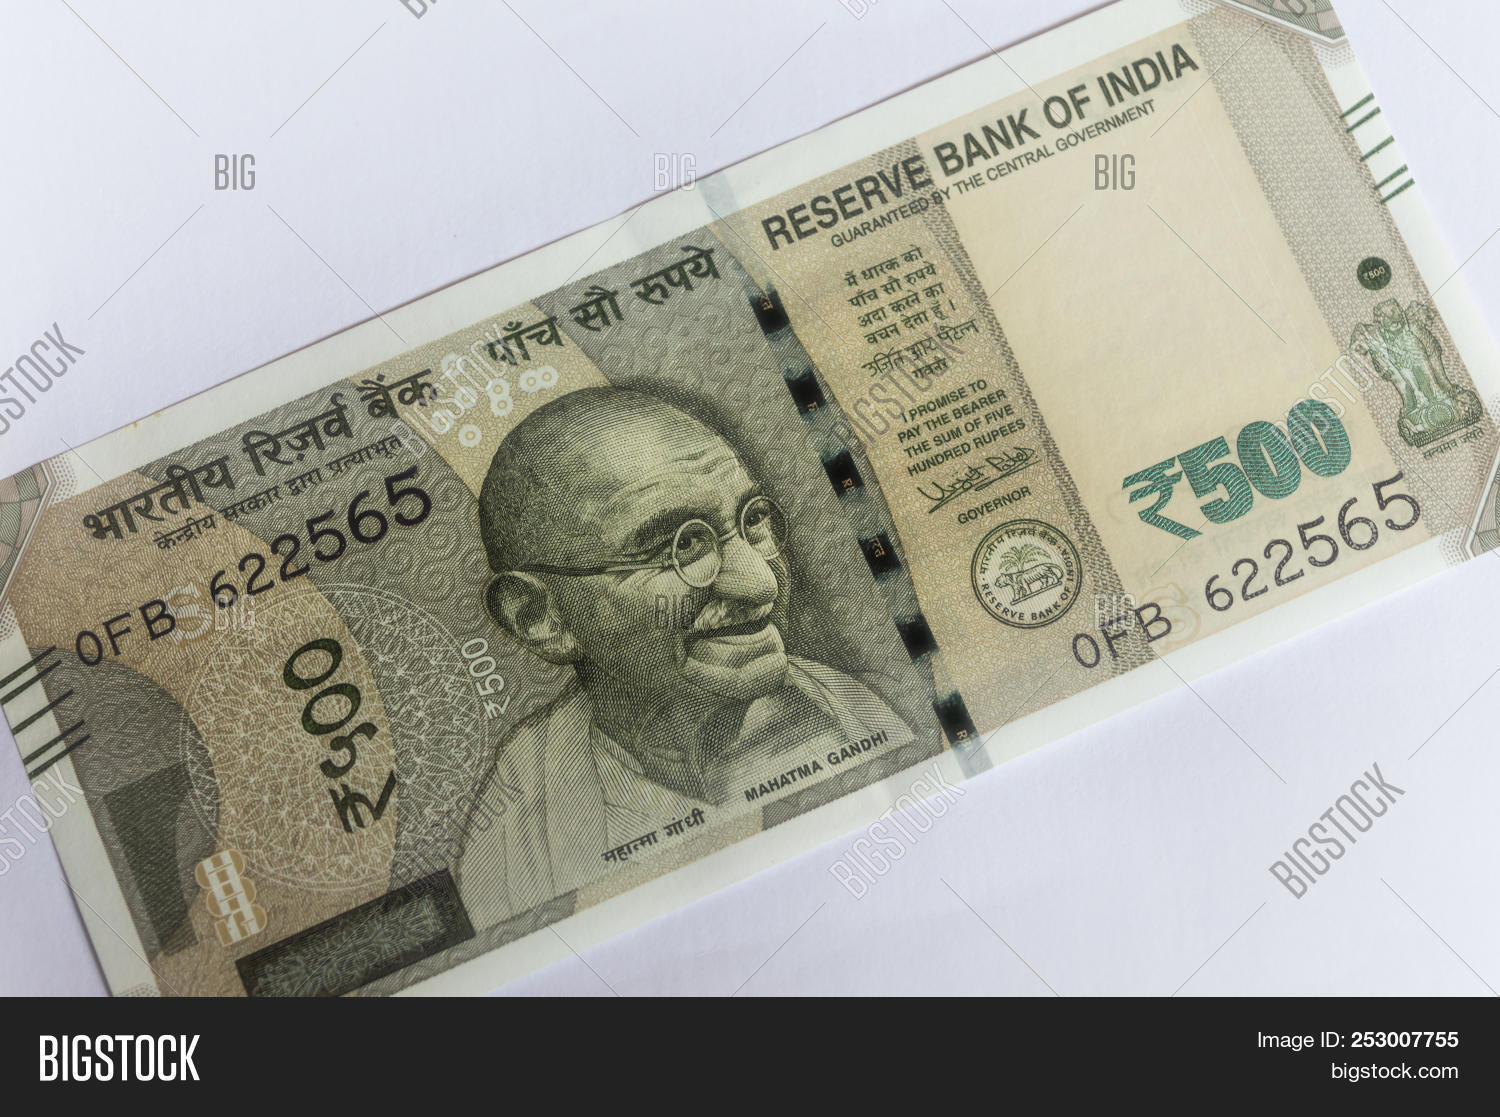 Indian Currency 500 Rs Image & Photo (Free Trial)   Bigstock